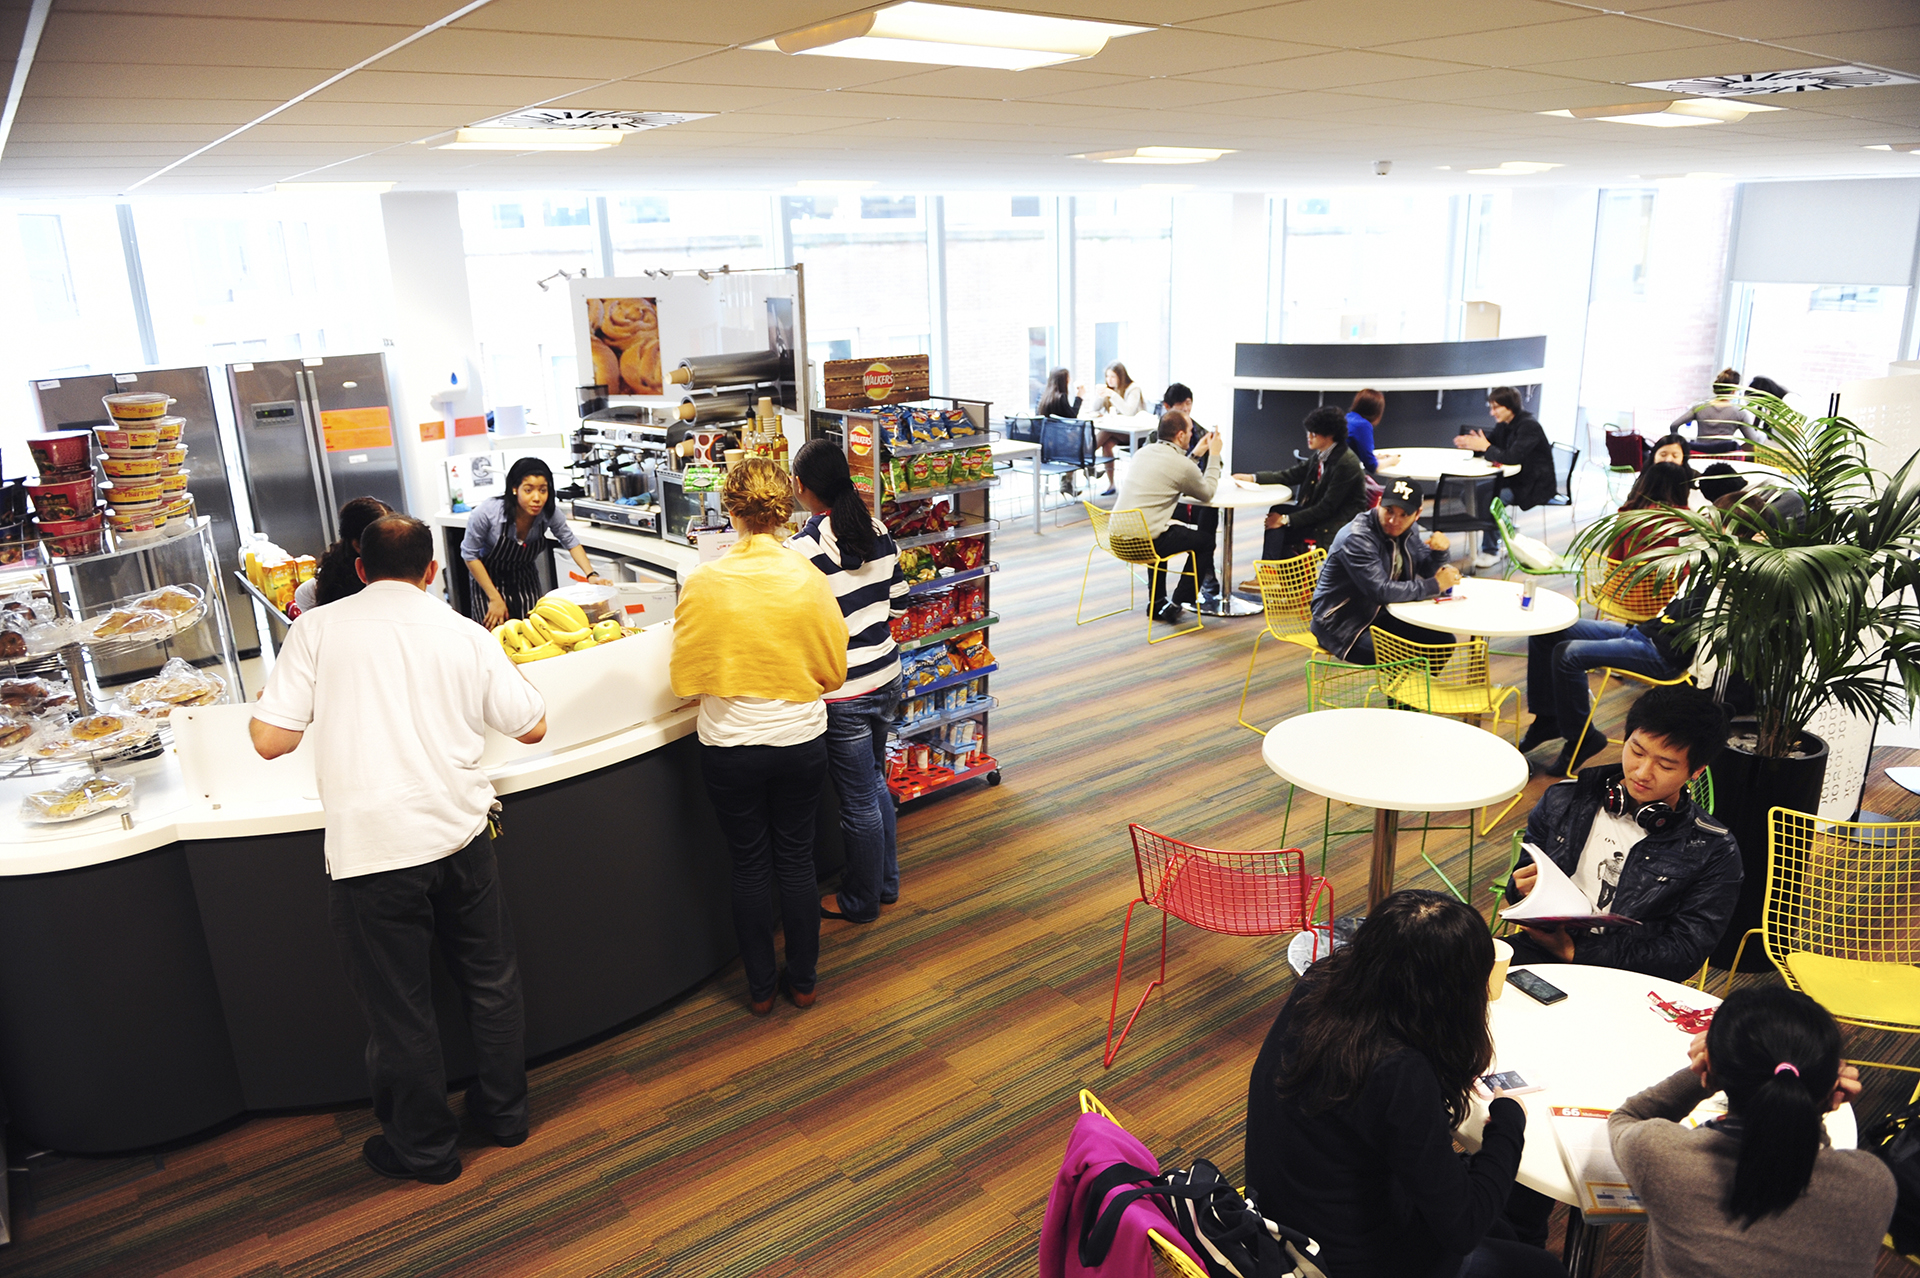 The INTO Centre cafe provides refreshments for students